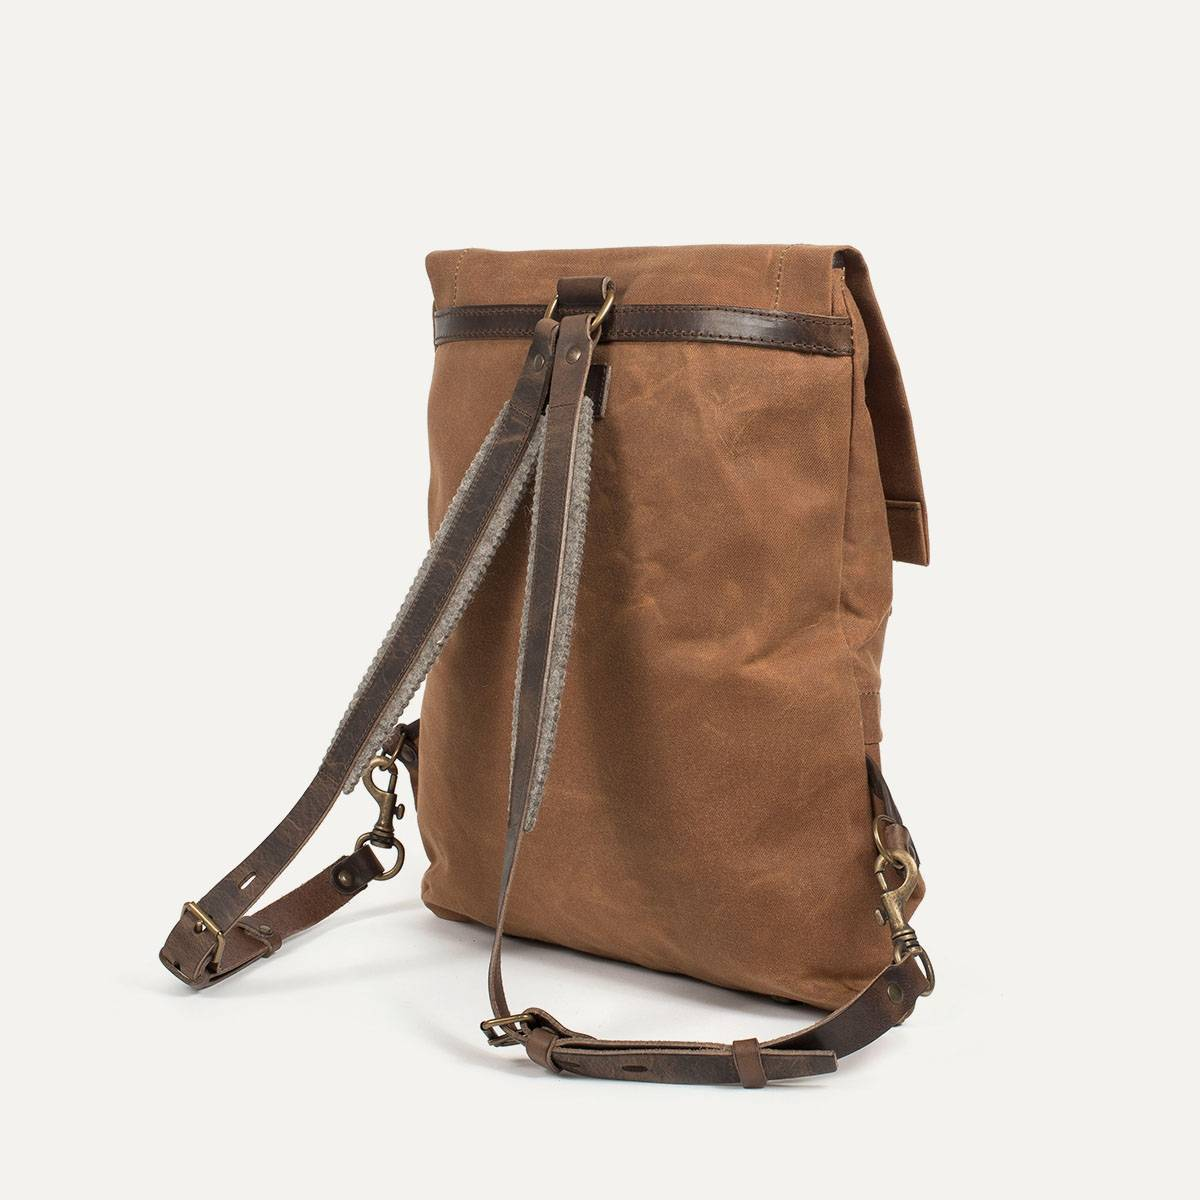 Coursier backpack WAXY - Camel/Brown (image n°4)